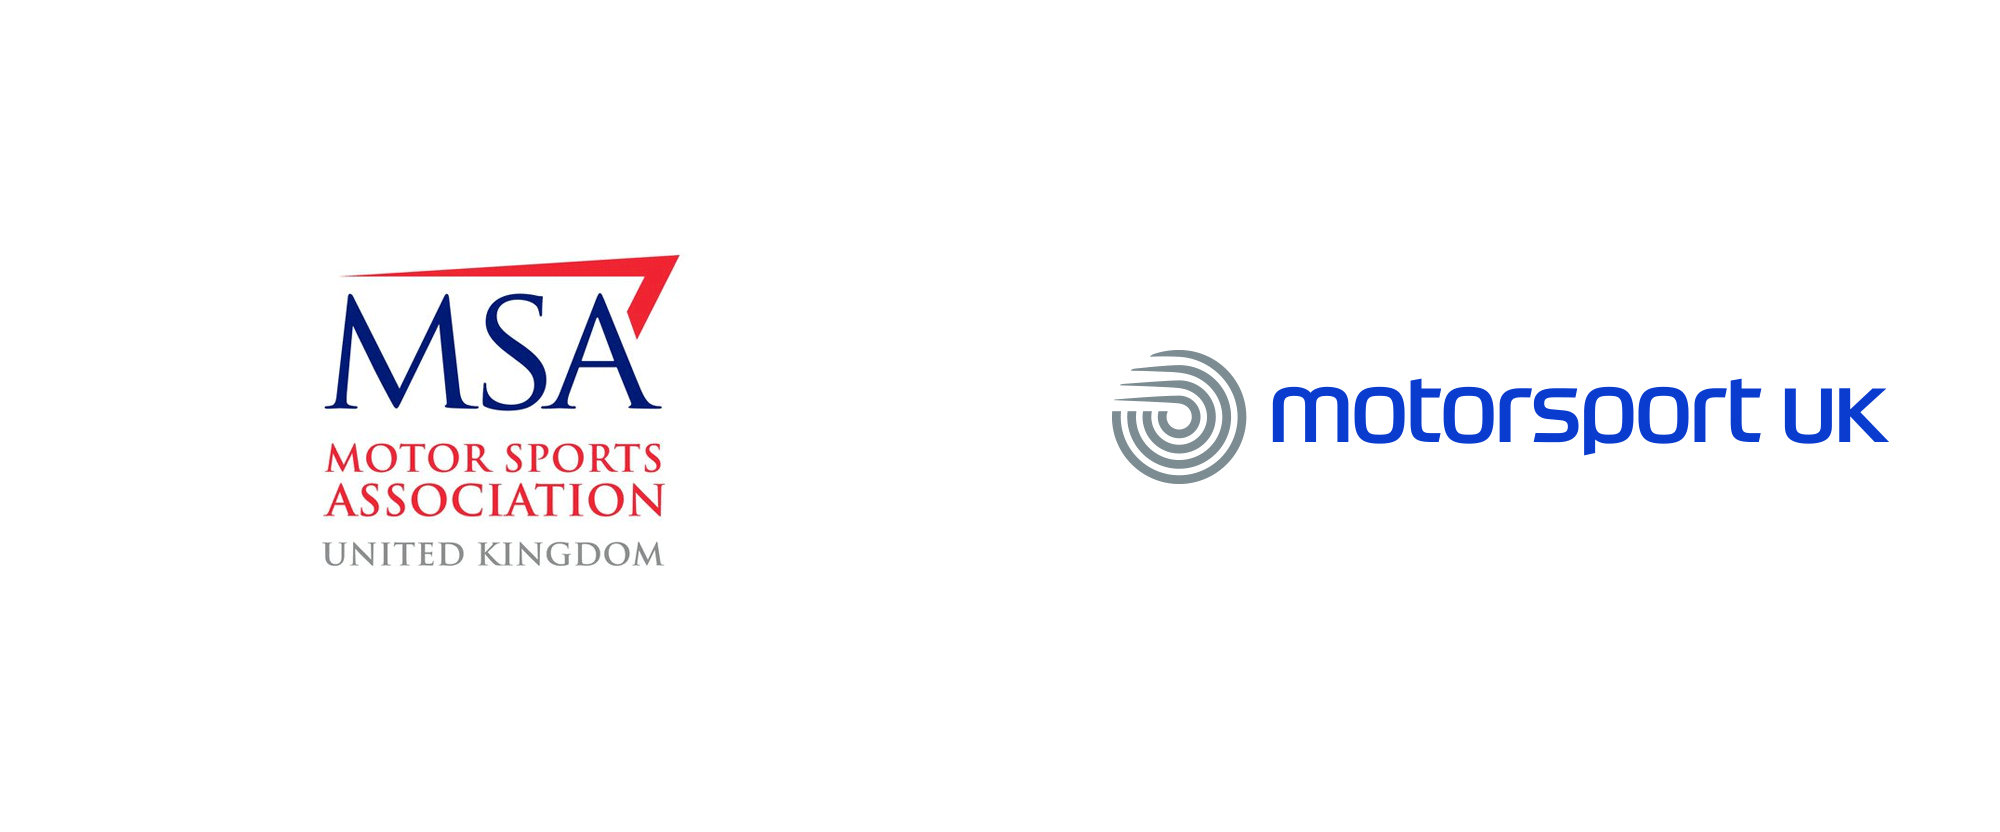 New Logo and Identity for Motorsport UK by rbl Brands